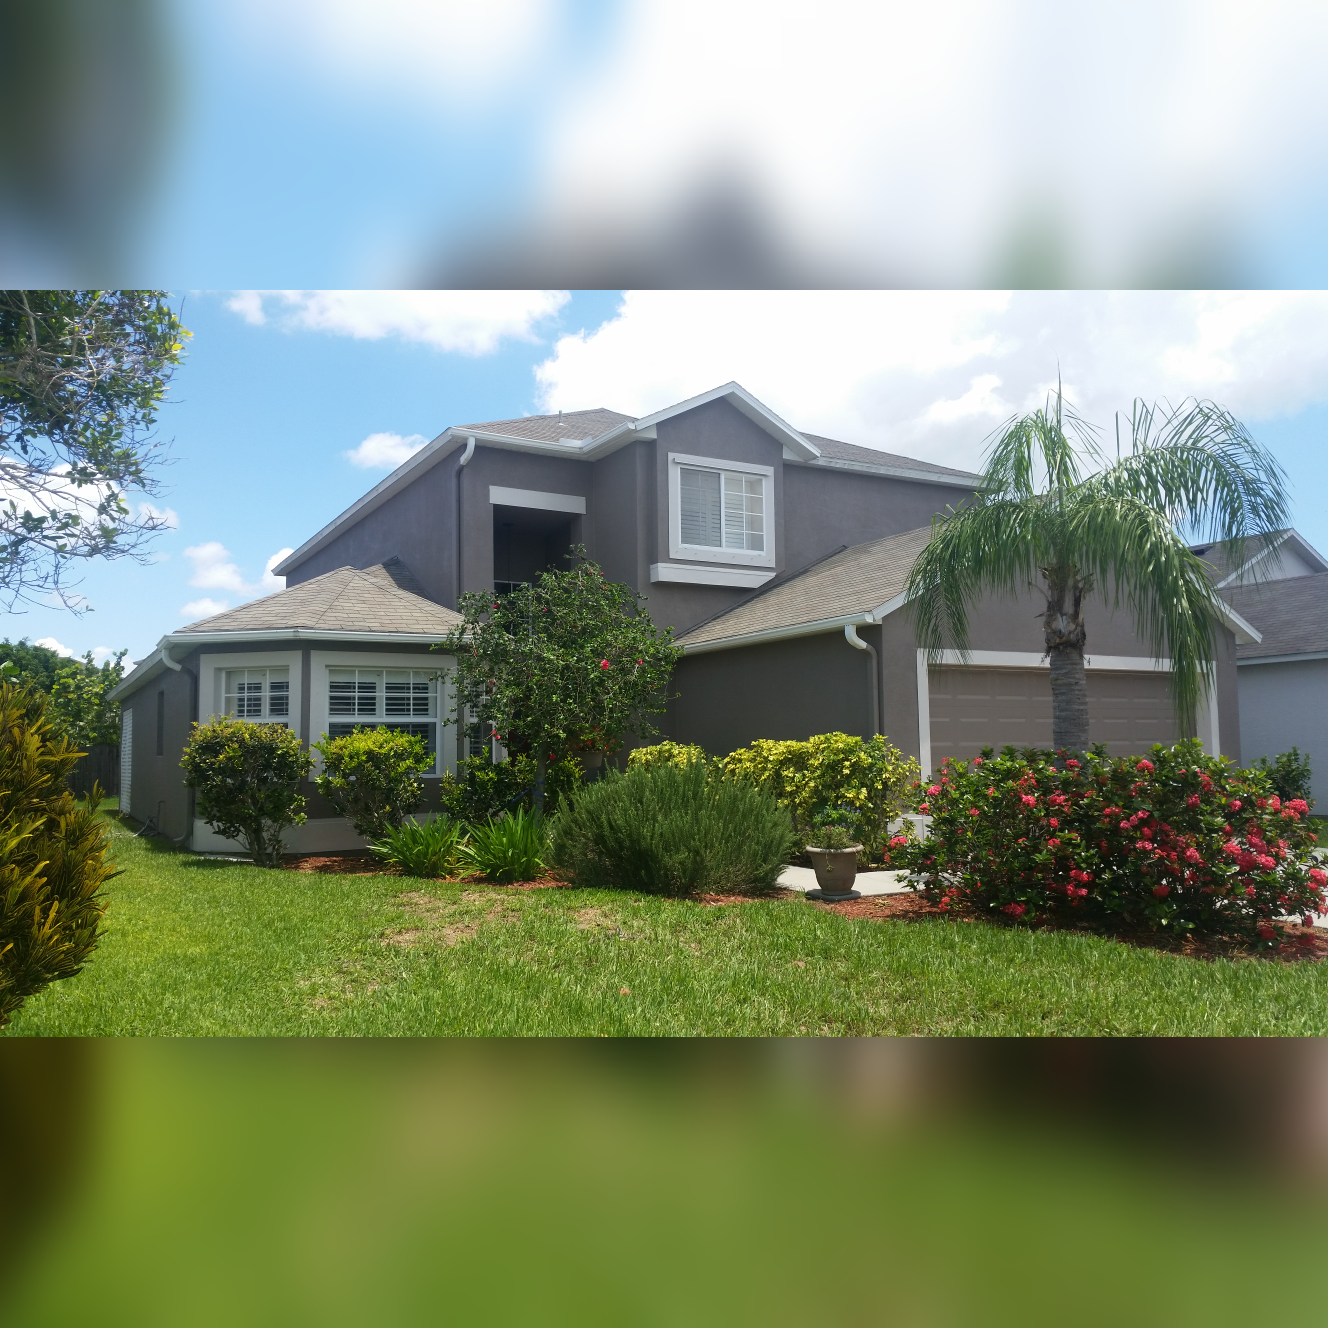 Best Painters In Brevard County. Best Painters in Melbourne. Best Painters in orange county. Best Painters in palmbay Florida. Best Painters. . . . . . #luxury #home #homepainting #Mansion #rich #painting #painters #painterslife #melbournefl #melbourneflorida #brevard #brevardcounty #homes #fancy #homeowners #homeoffice #paintmyhouse #painthouse #colors #entrepreneur #garyvee #grantcardone #amazing #superrich #vieraflorida